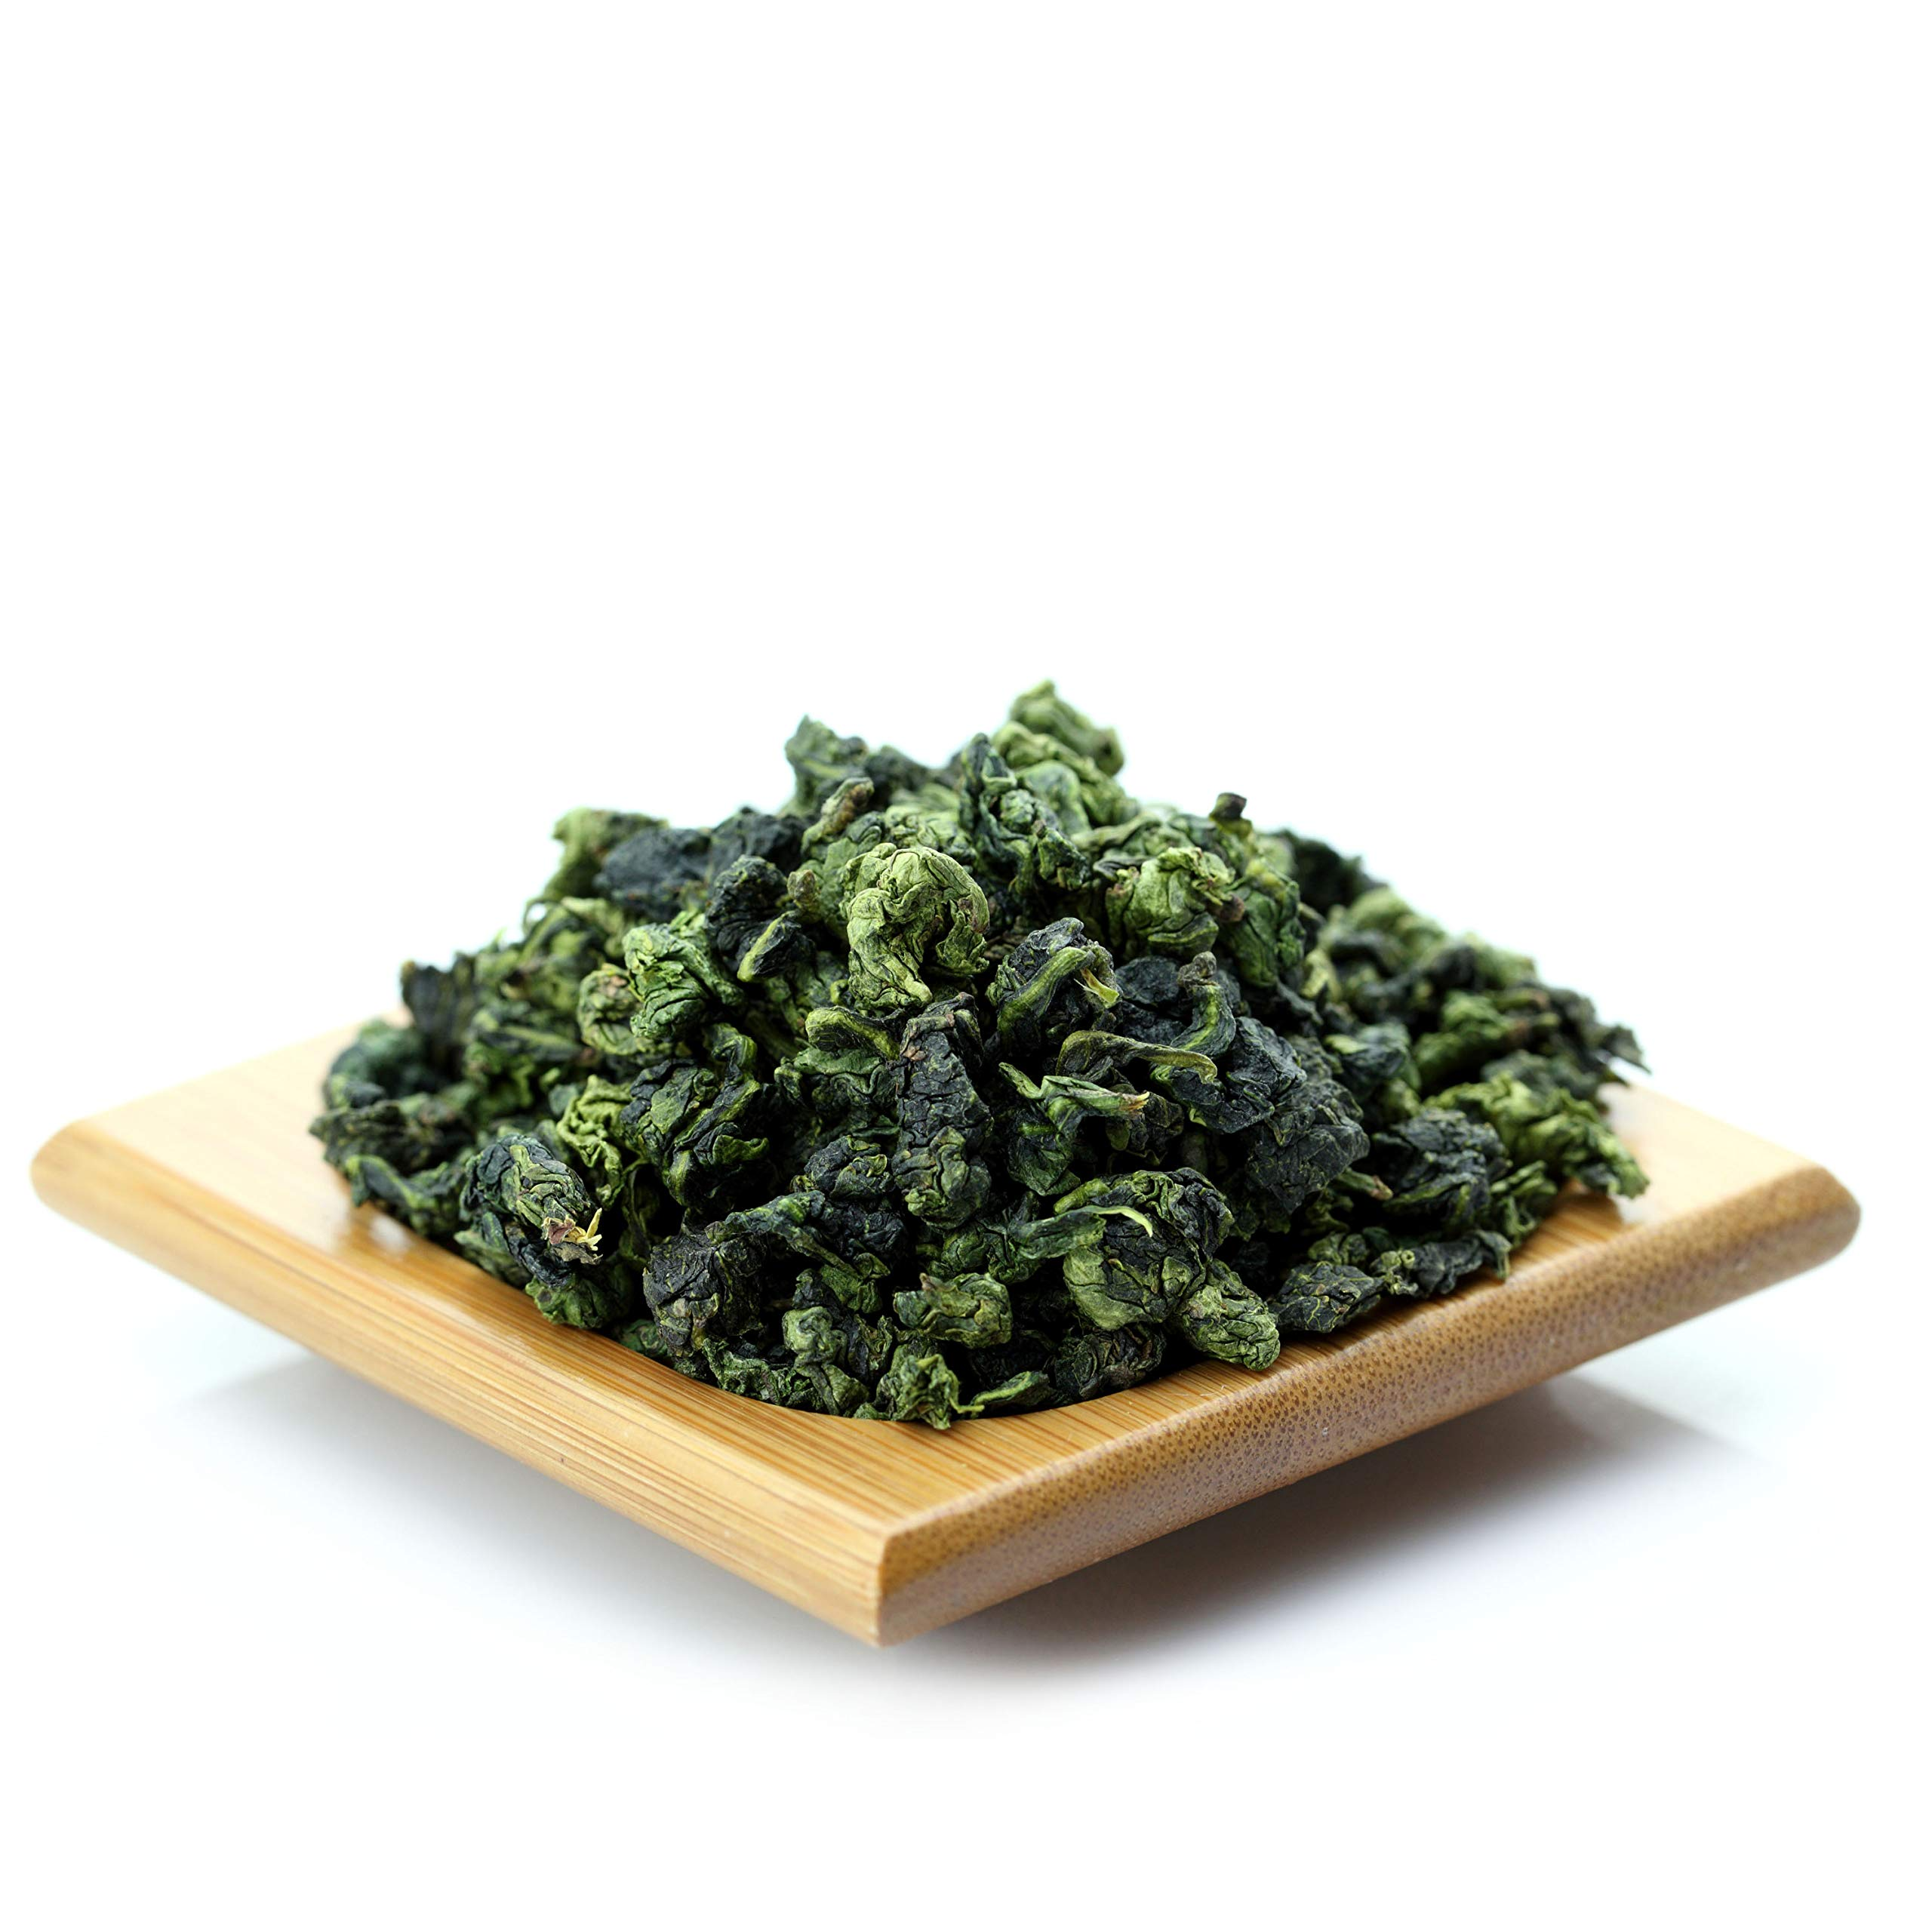 GOARTEA 1000g (35.2 Oz) Premium Organic High Mountain Fujian Anxi Tie Guan Yin Tieguanyin Iron Goddess Chinese Oolong Tea